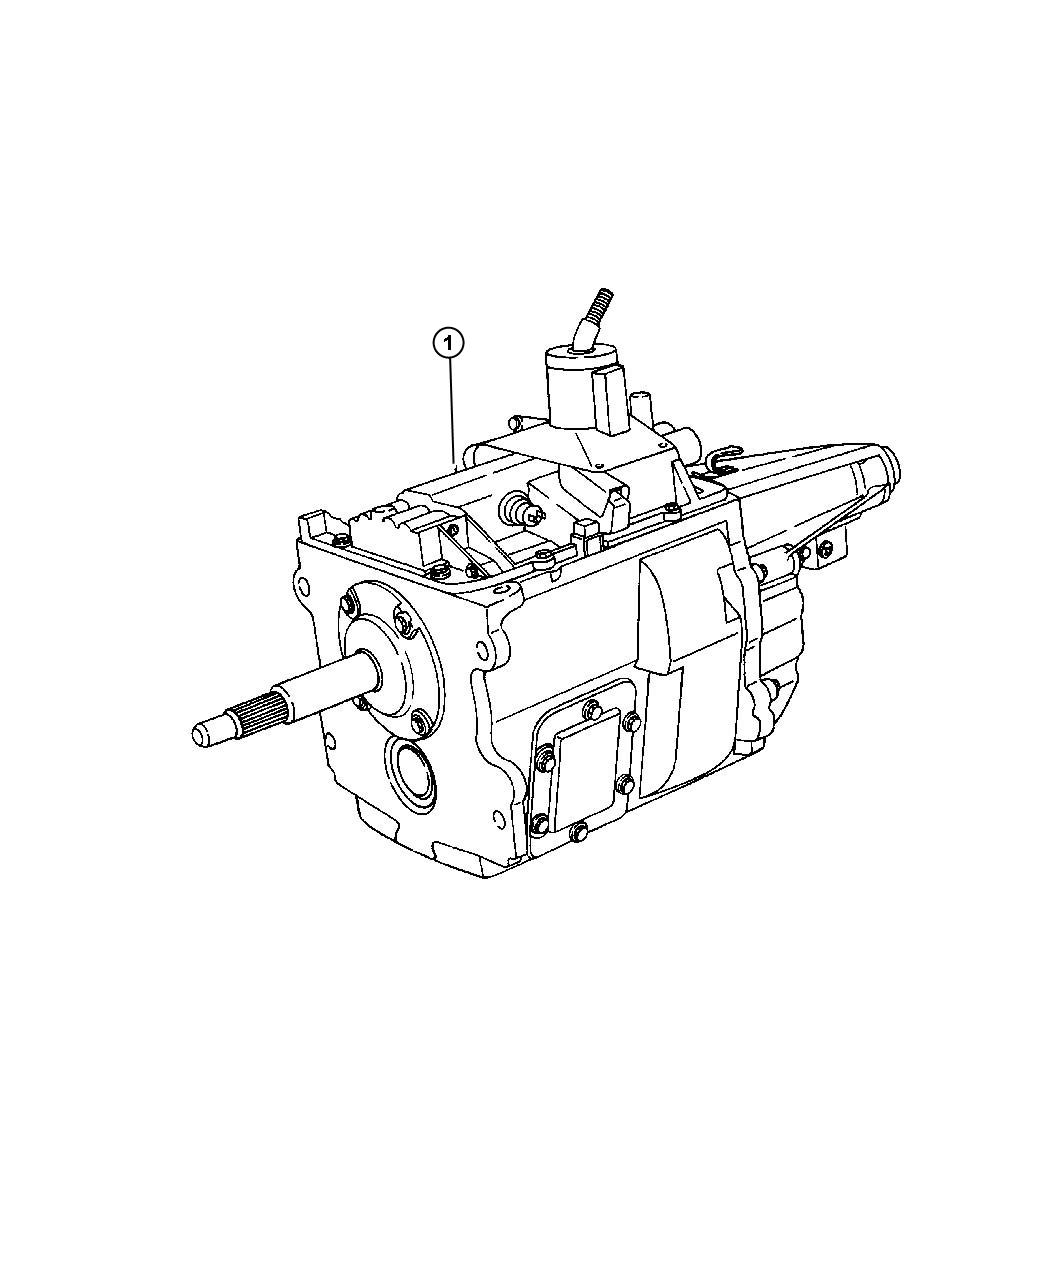 [1999 Dodge Grand Caravan Manual Transmission Schematic